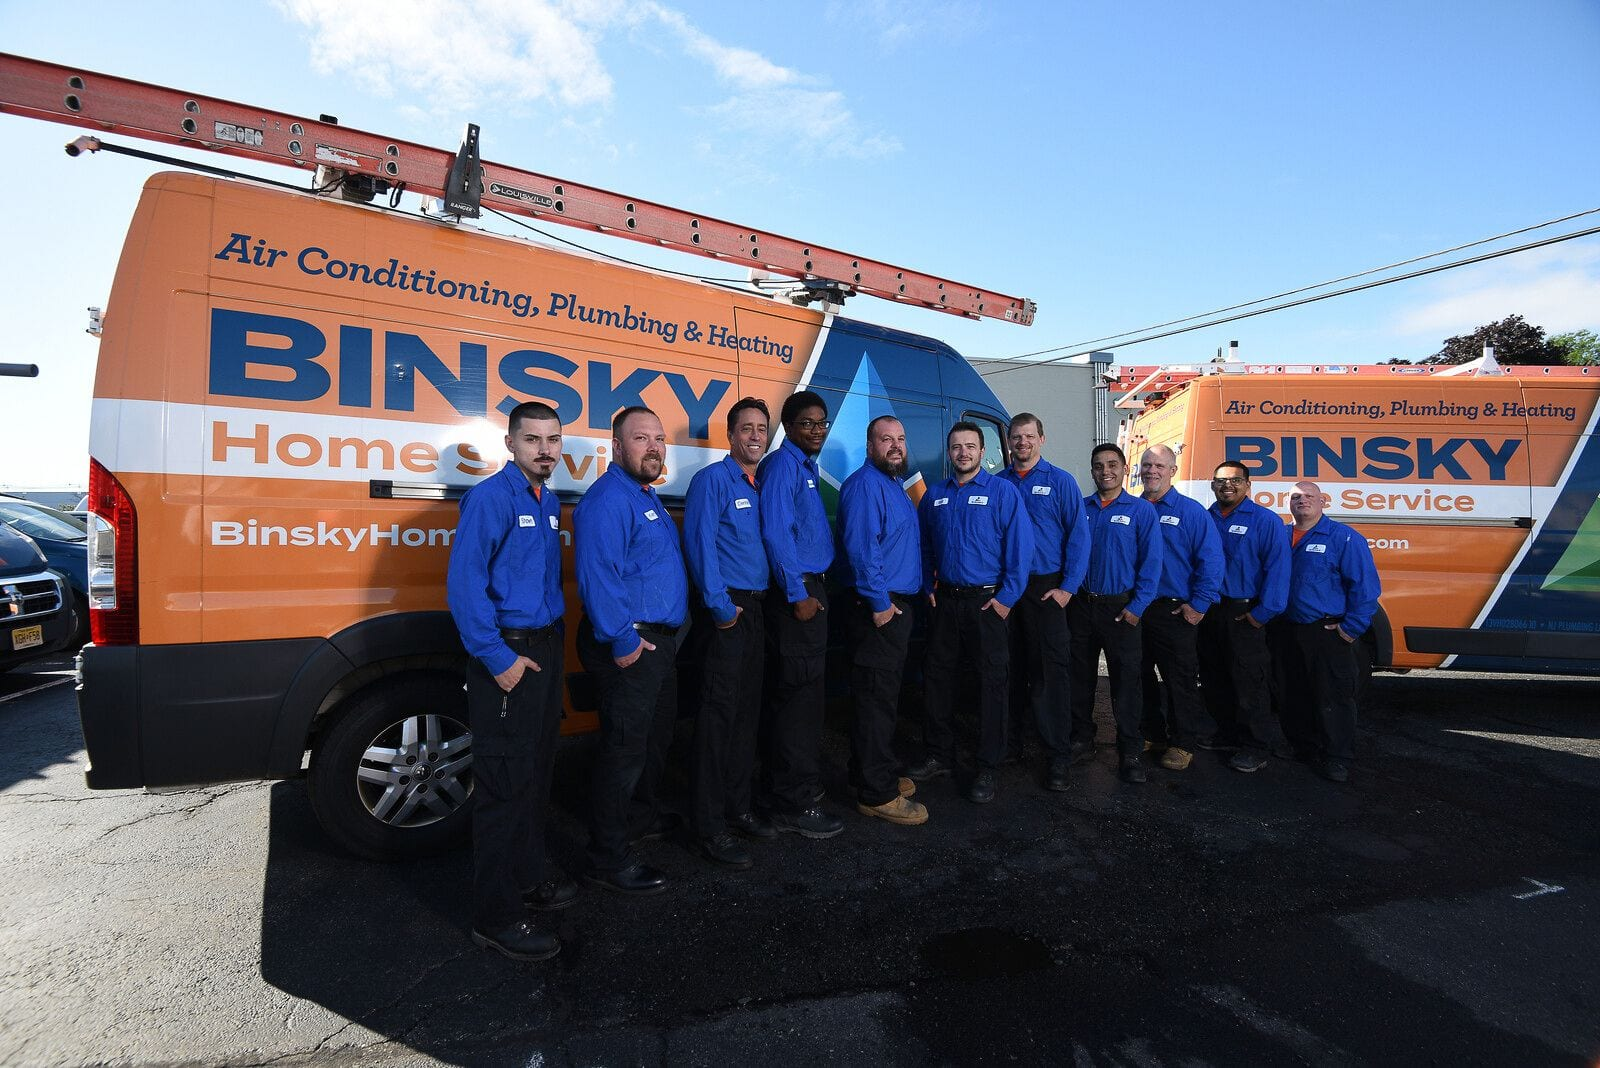 Staff with Truck